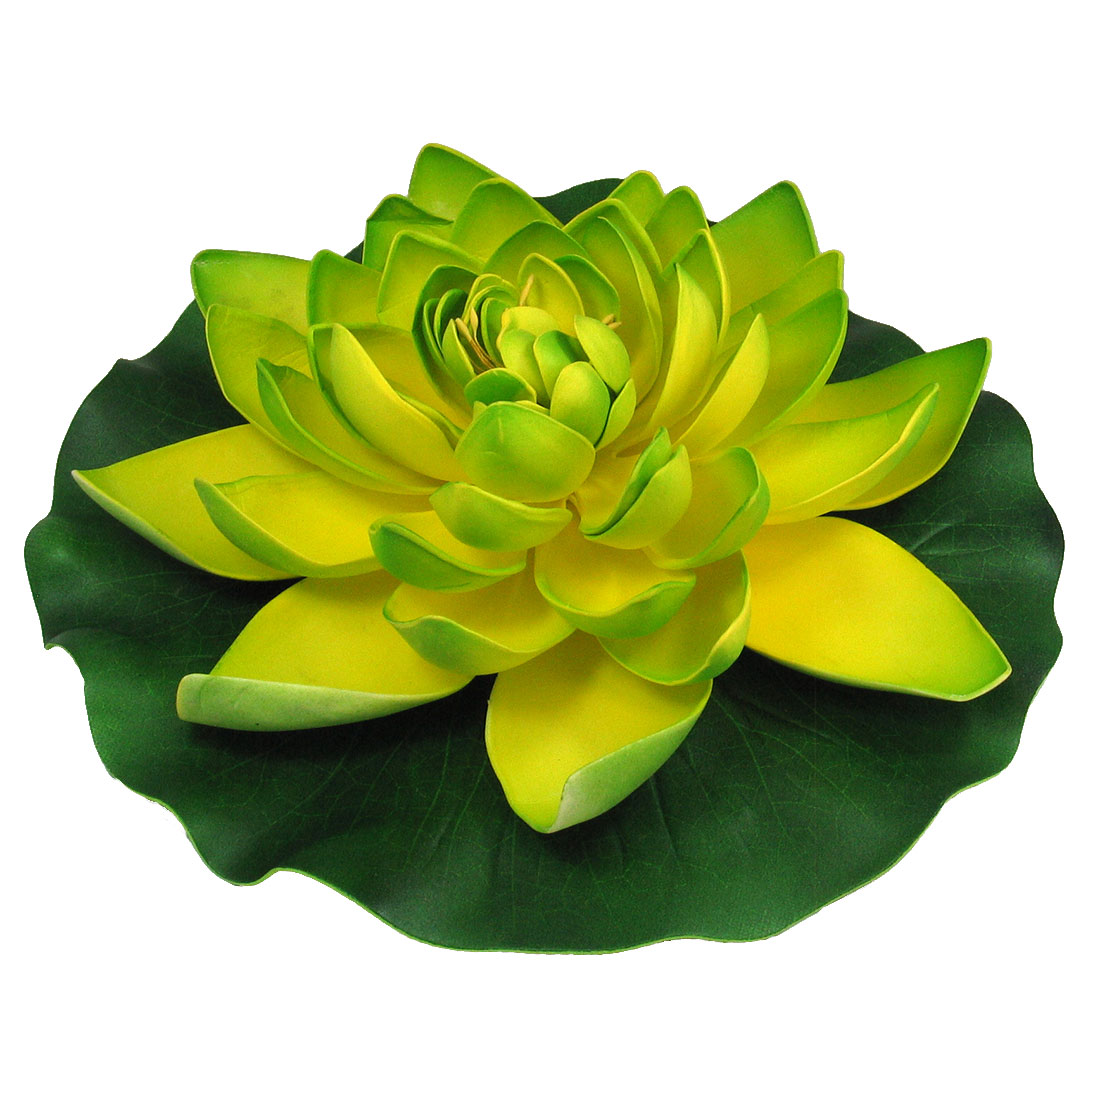 Aquarium Fish Tank Foam Artificial Floating Foam Lotus Landscaping Green Yellow